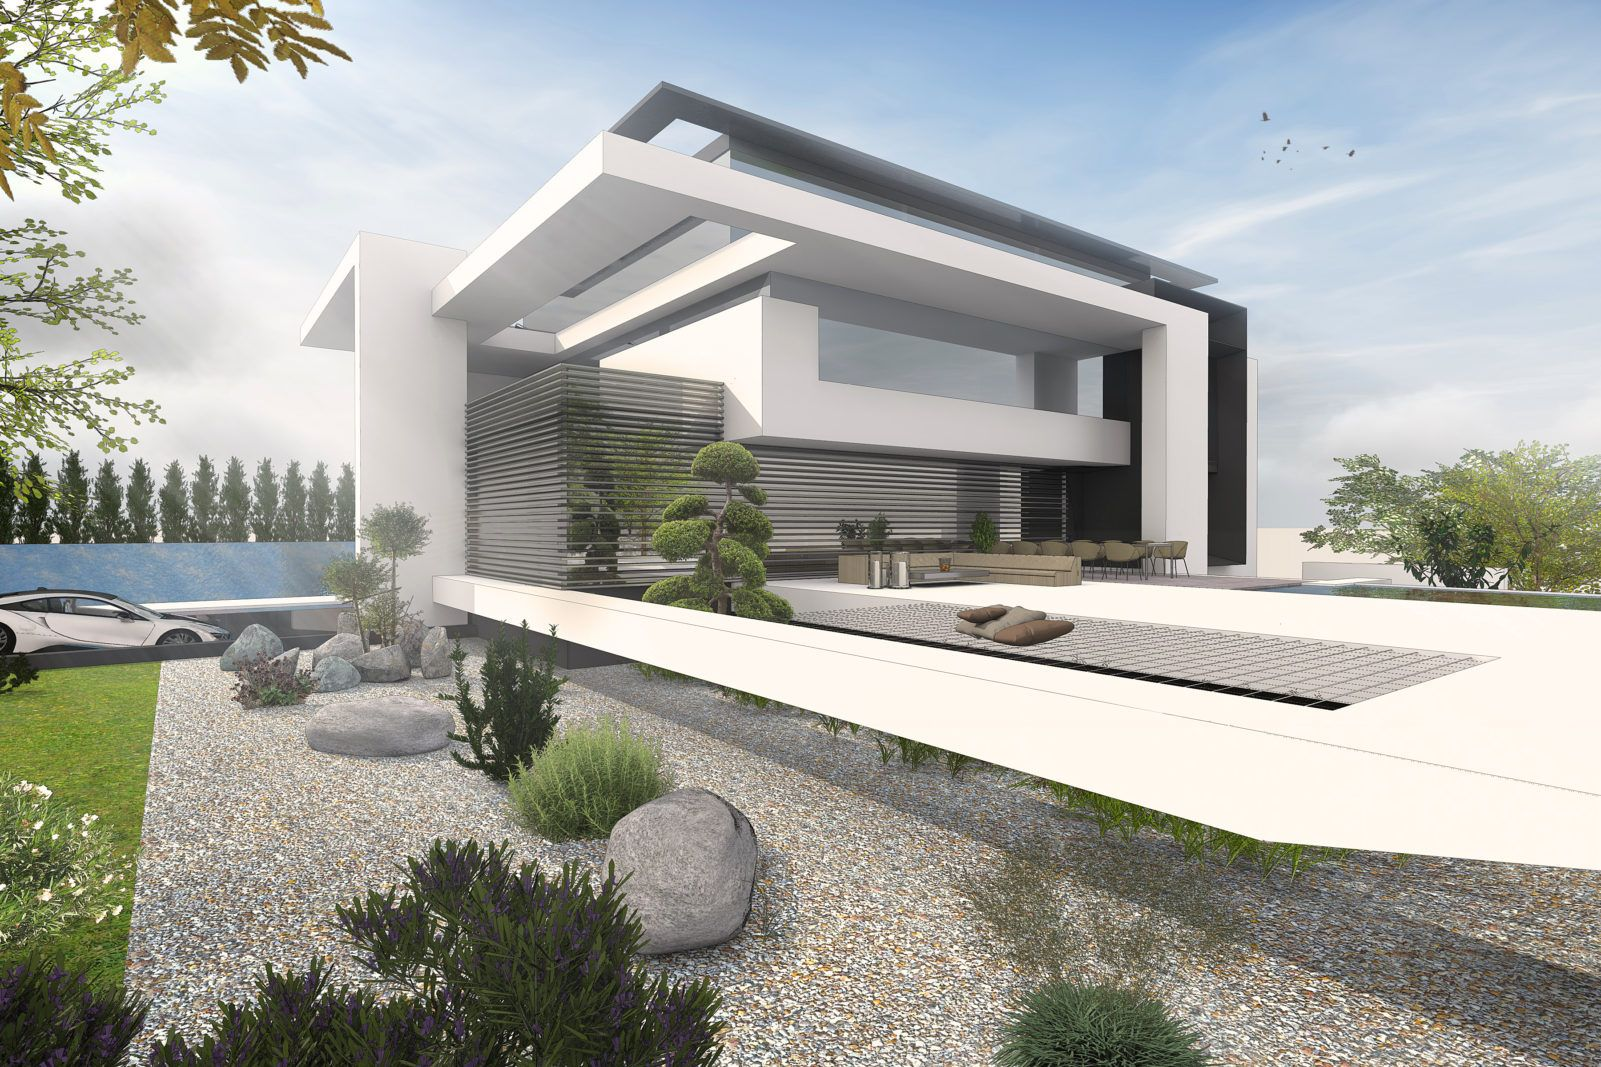 exklusive h user bauen moderne villen architektur modern house design and architecture